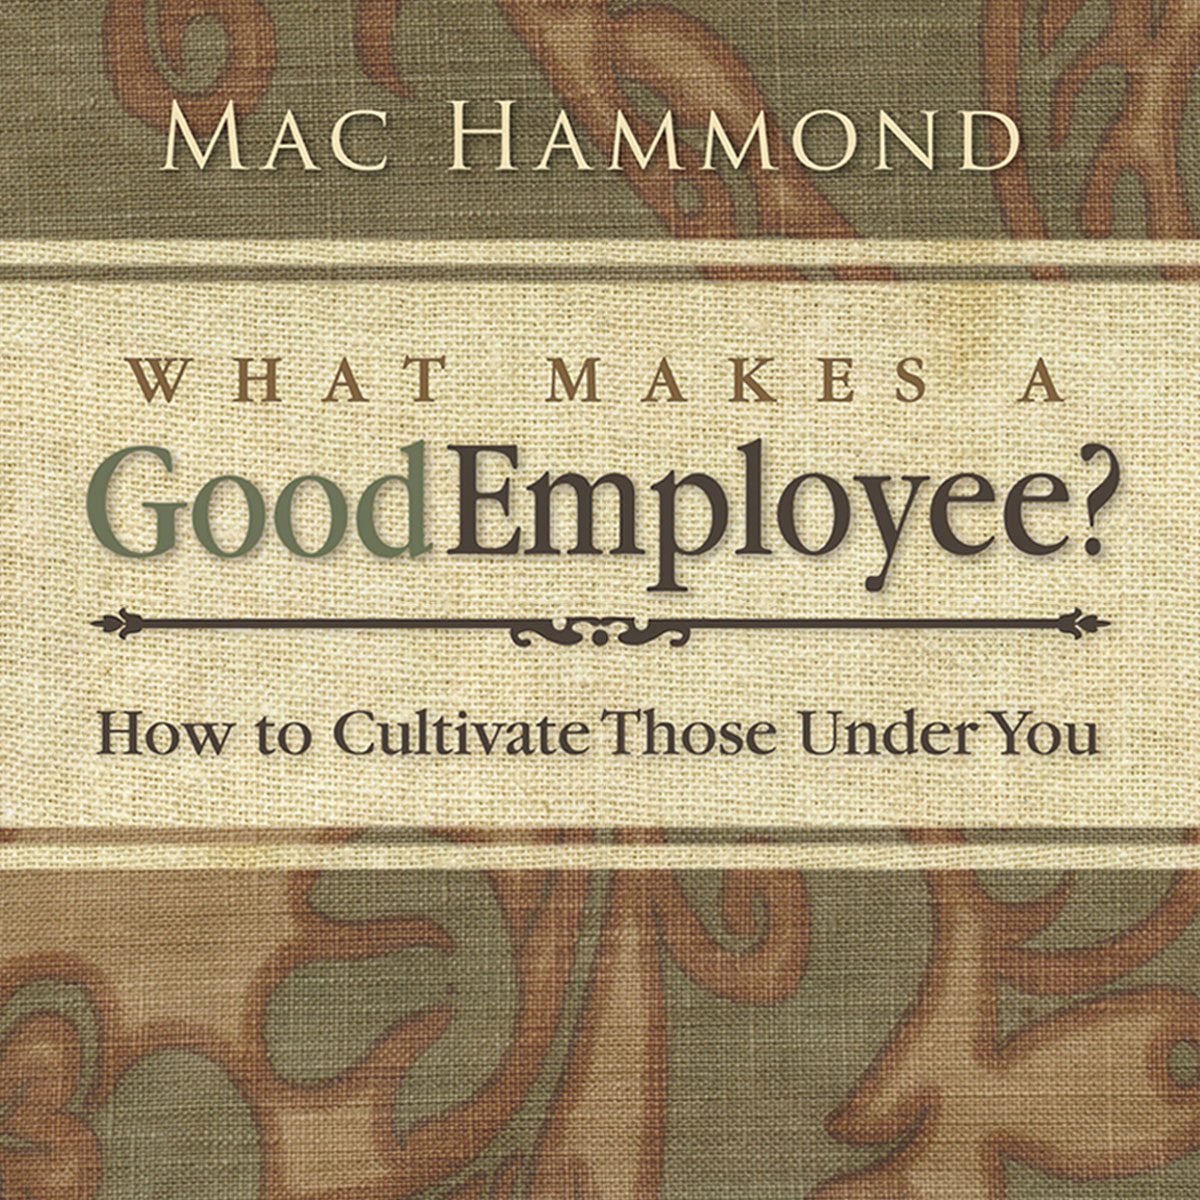 mac hammond what makes a good employee whatmakesagoodemployee